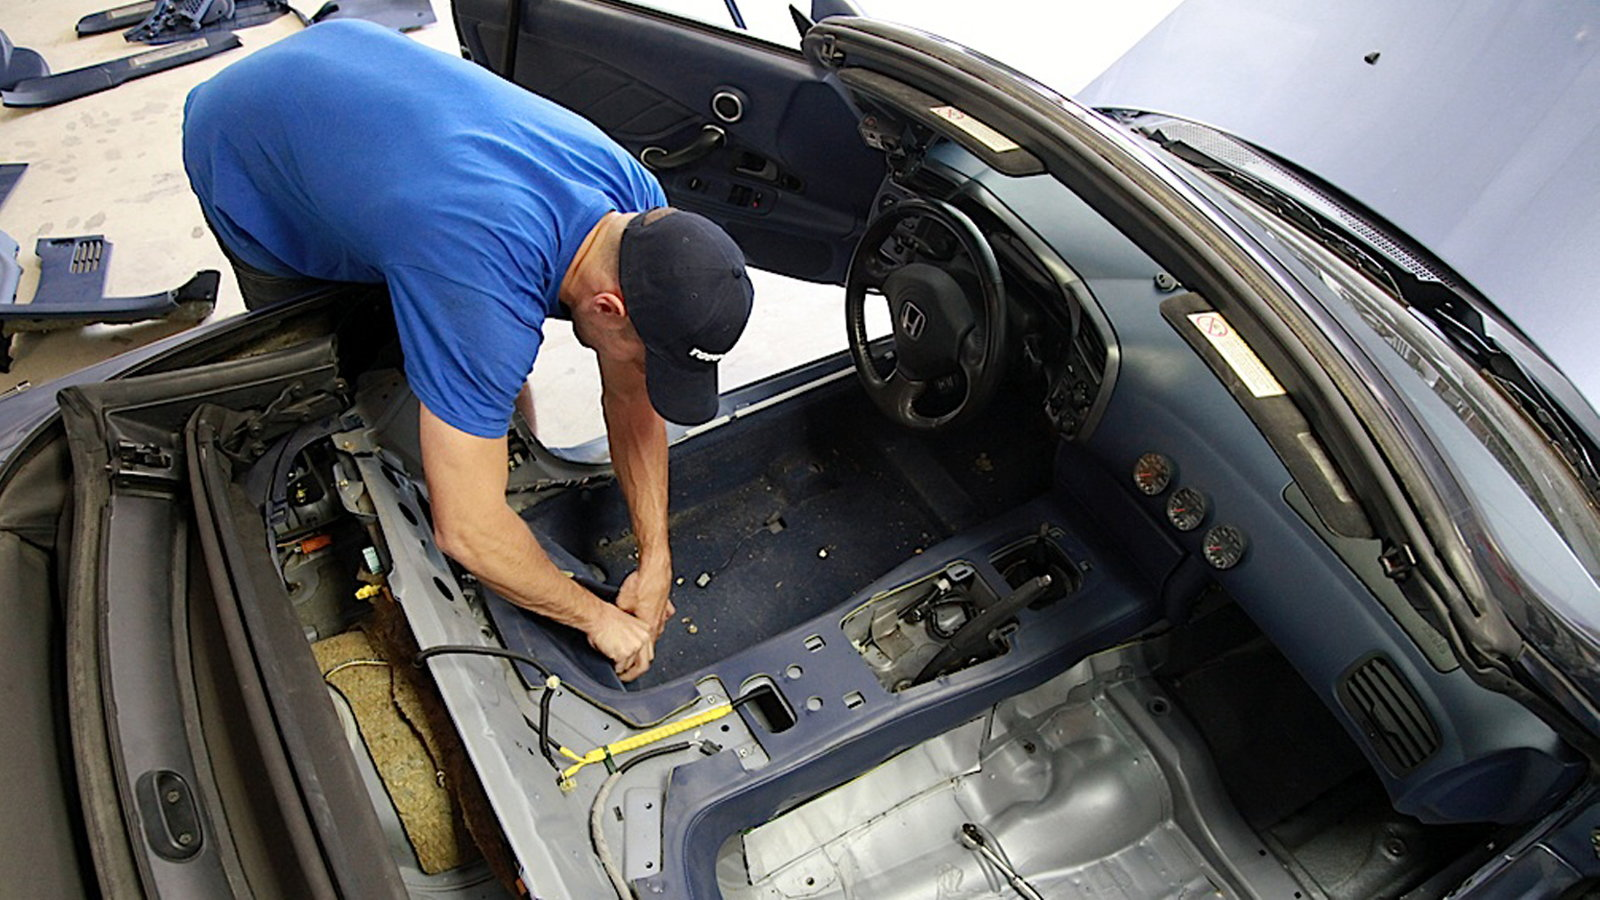 Upgrading Plastic Rear Convertible Top Windows to Glass